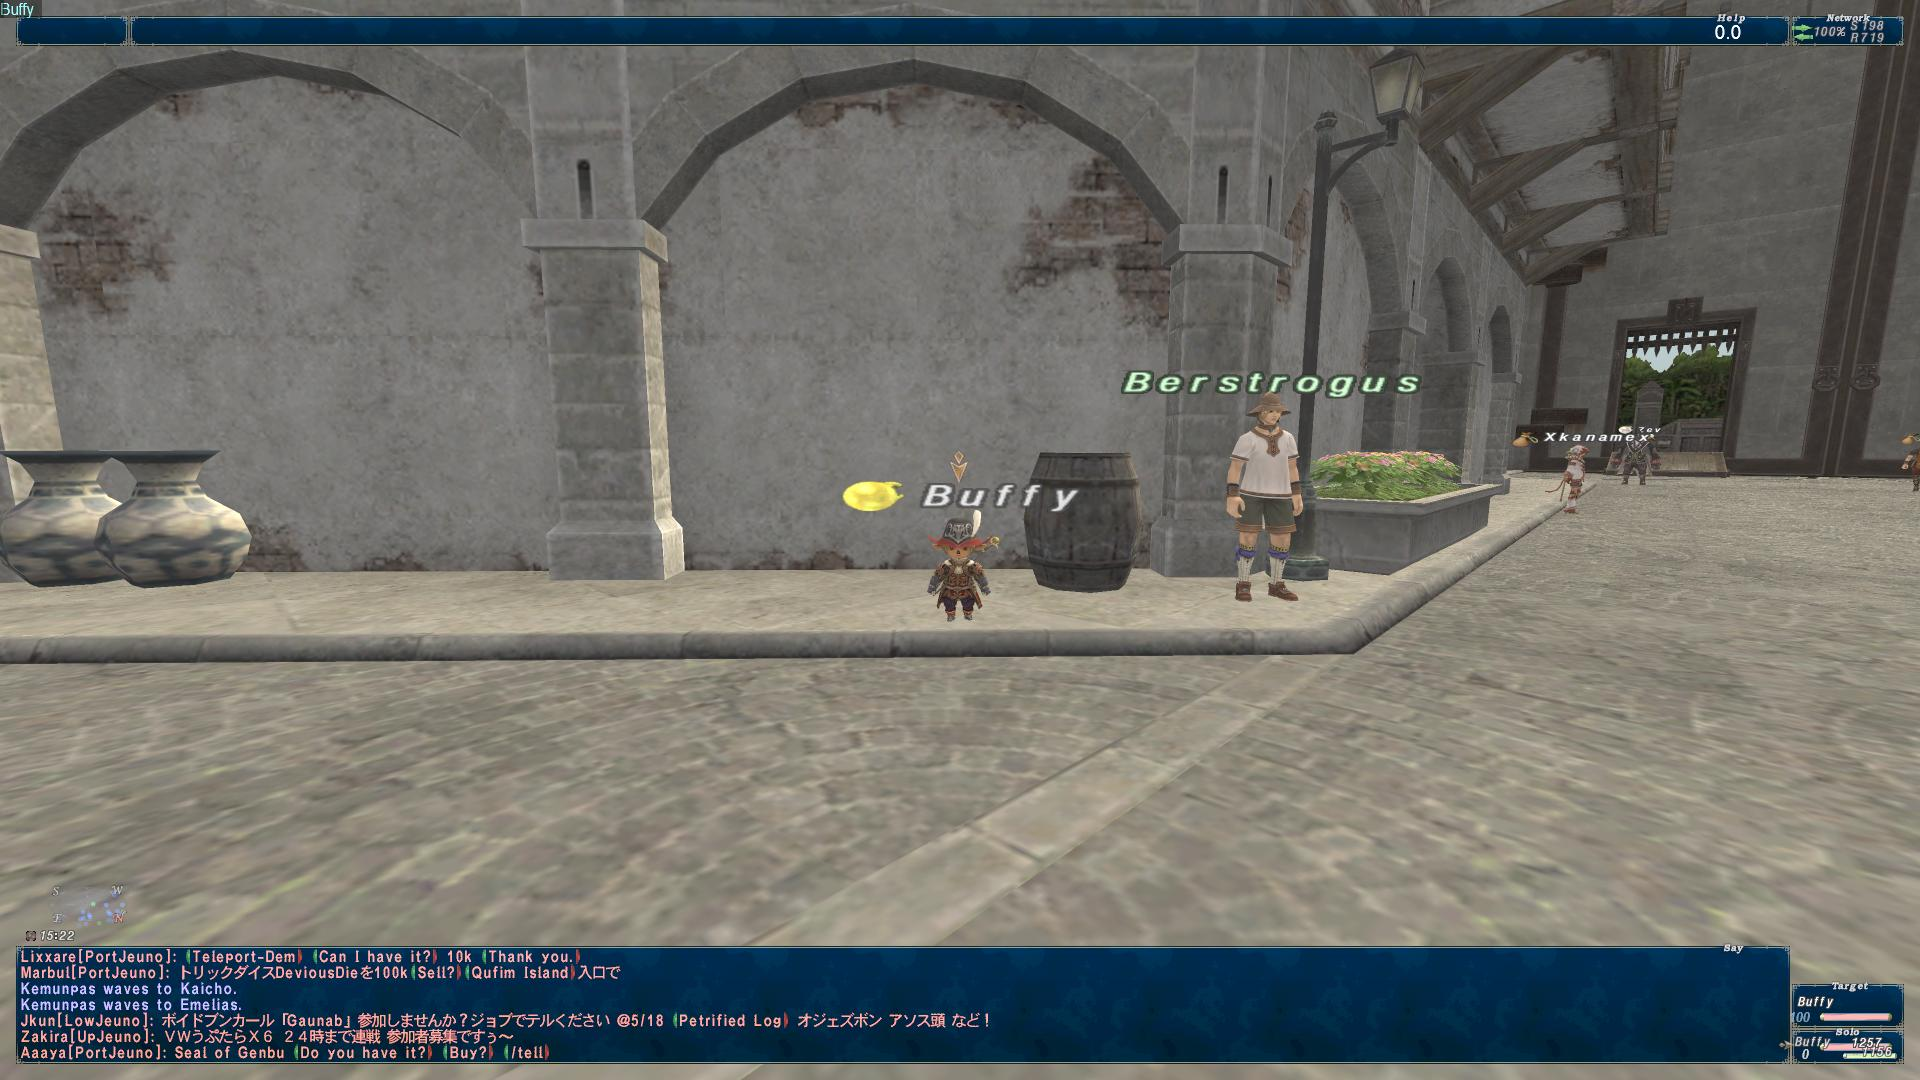 buffy ffxi fail from ffxiah randomly this spotted thought screenshot pretty before fucking last xiii time talling posted sure random